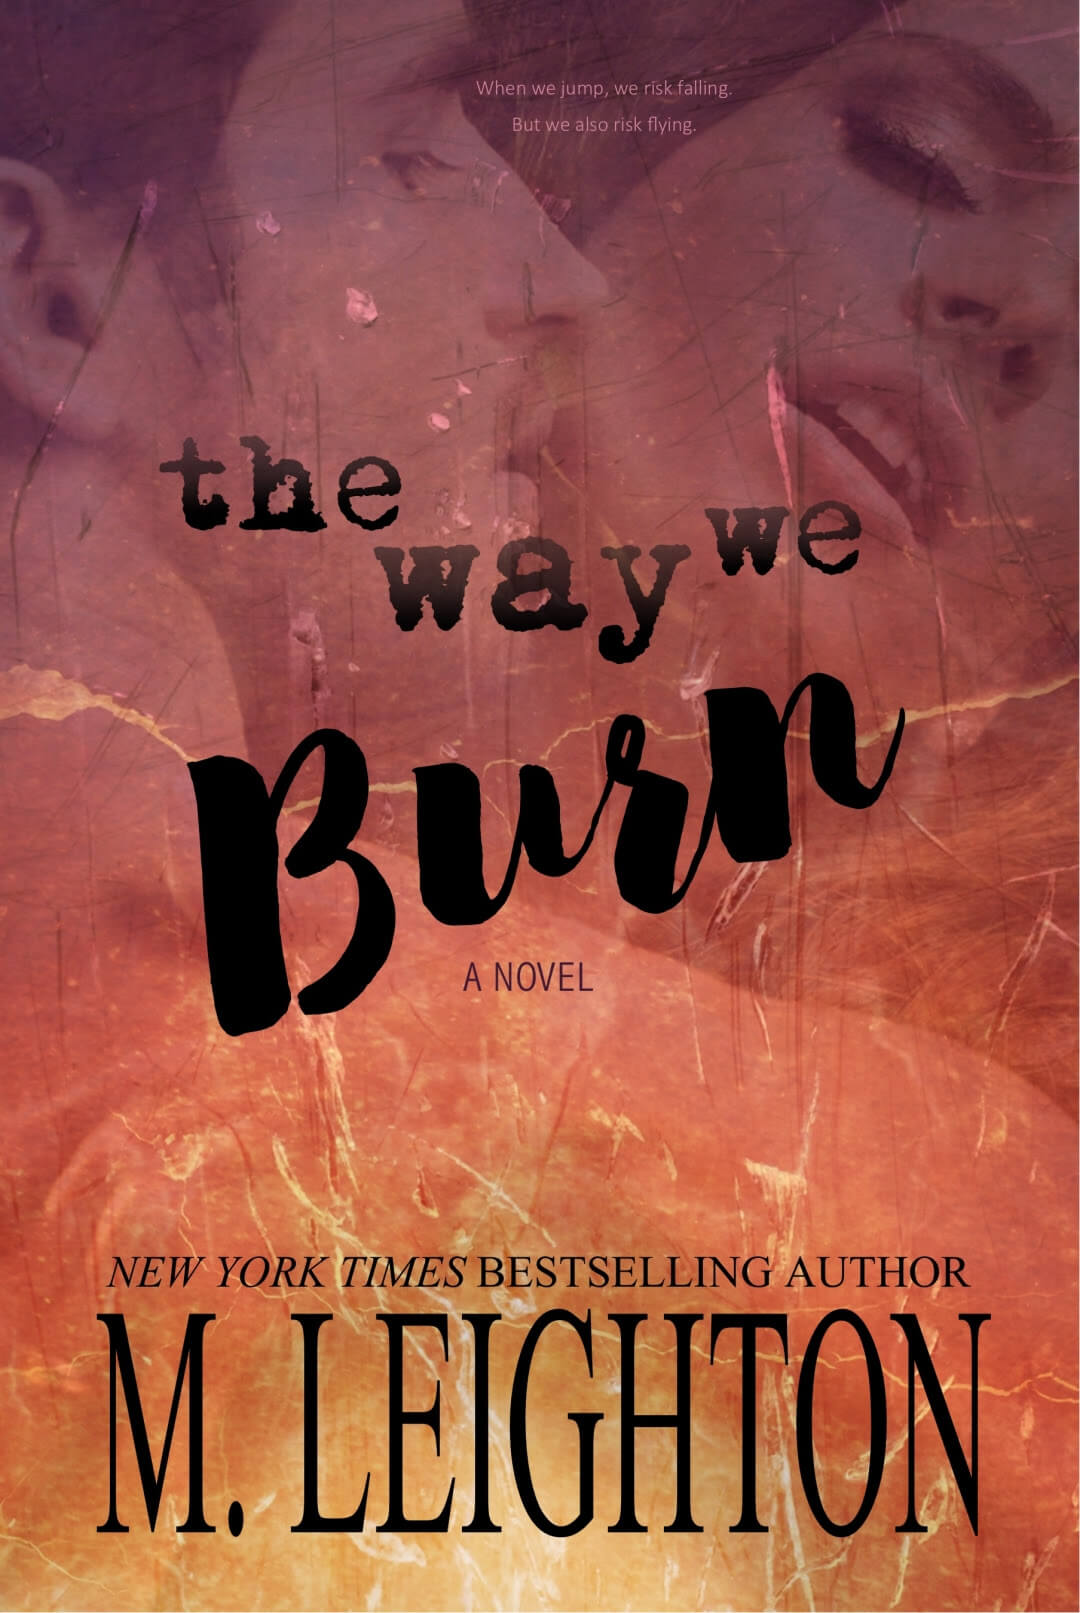 The Way We Burn: A Standalone Romance...With A Twist by Michelle Leighton